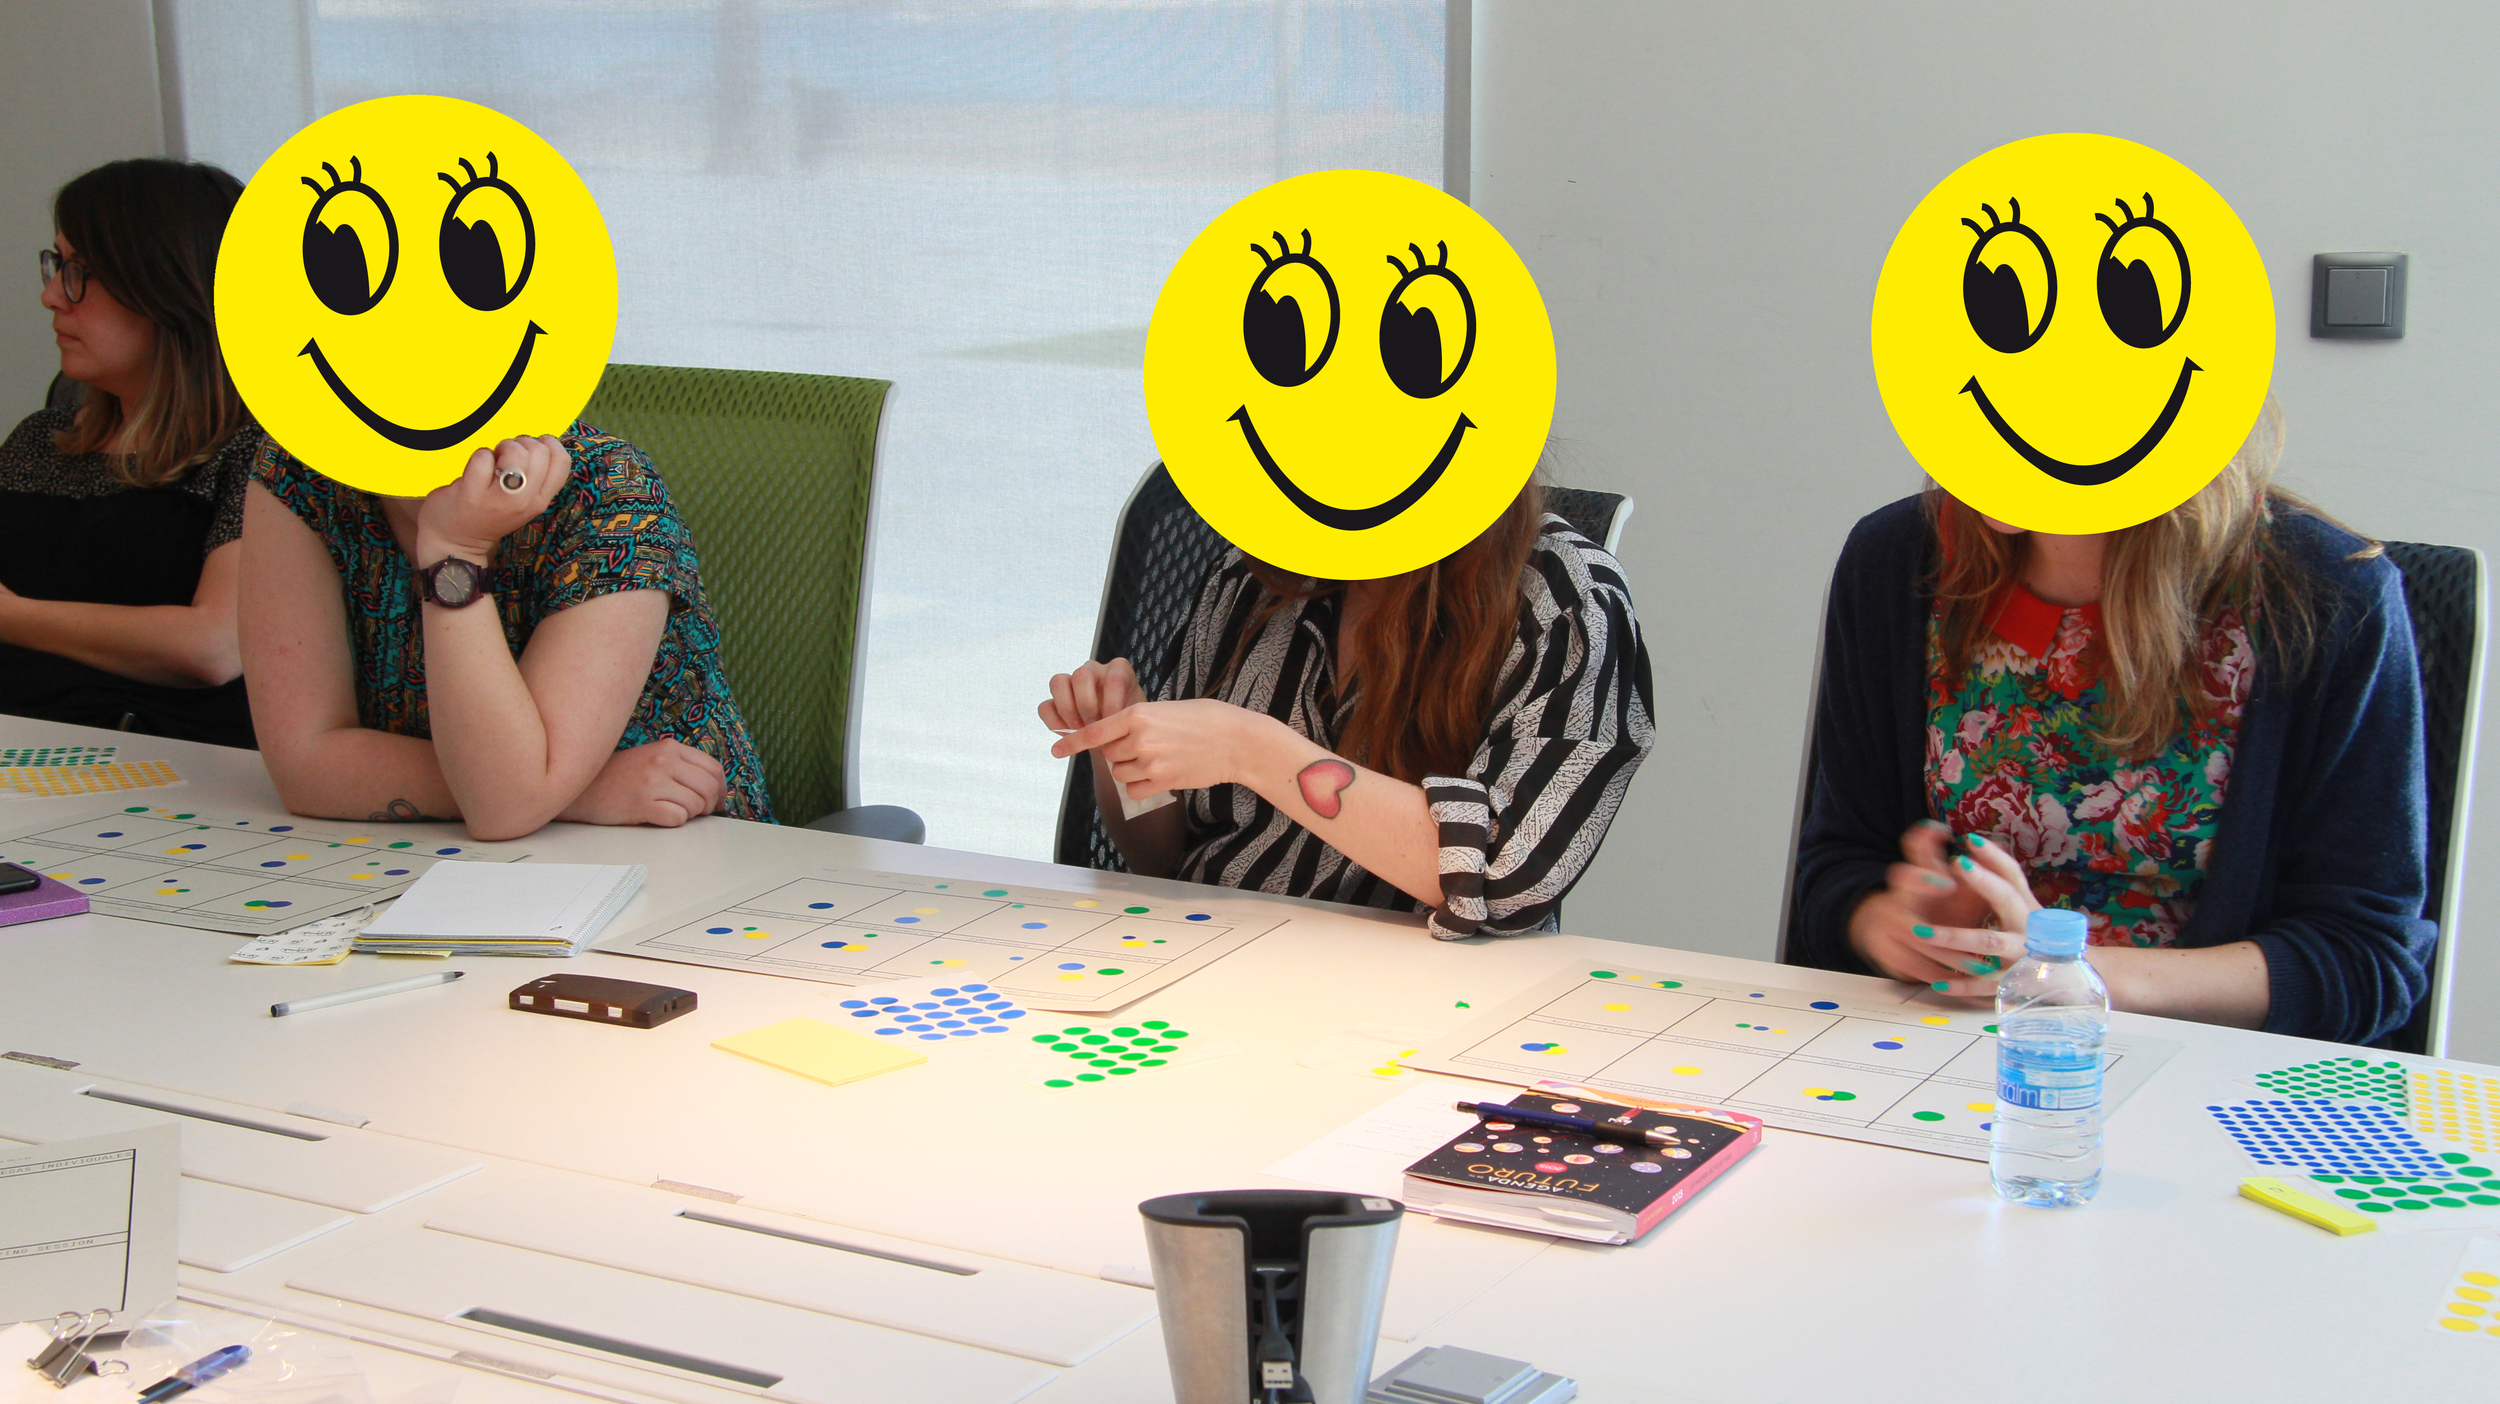 Client: Desigual / Co-creation   to understand and re-define the creative process of clothing. Workshop lead in collaboration with Ariel Guersen  zvaig and Salva Fabregas. Part of the Elisava Innovation Lab.